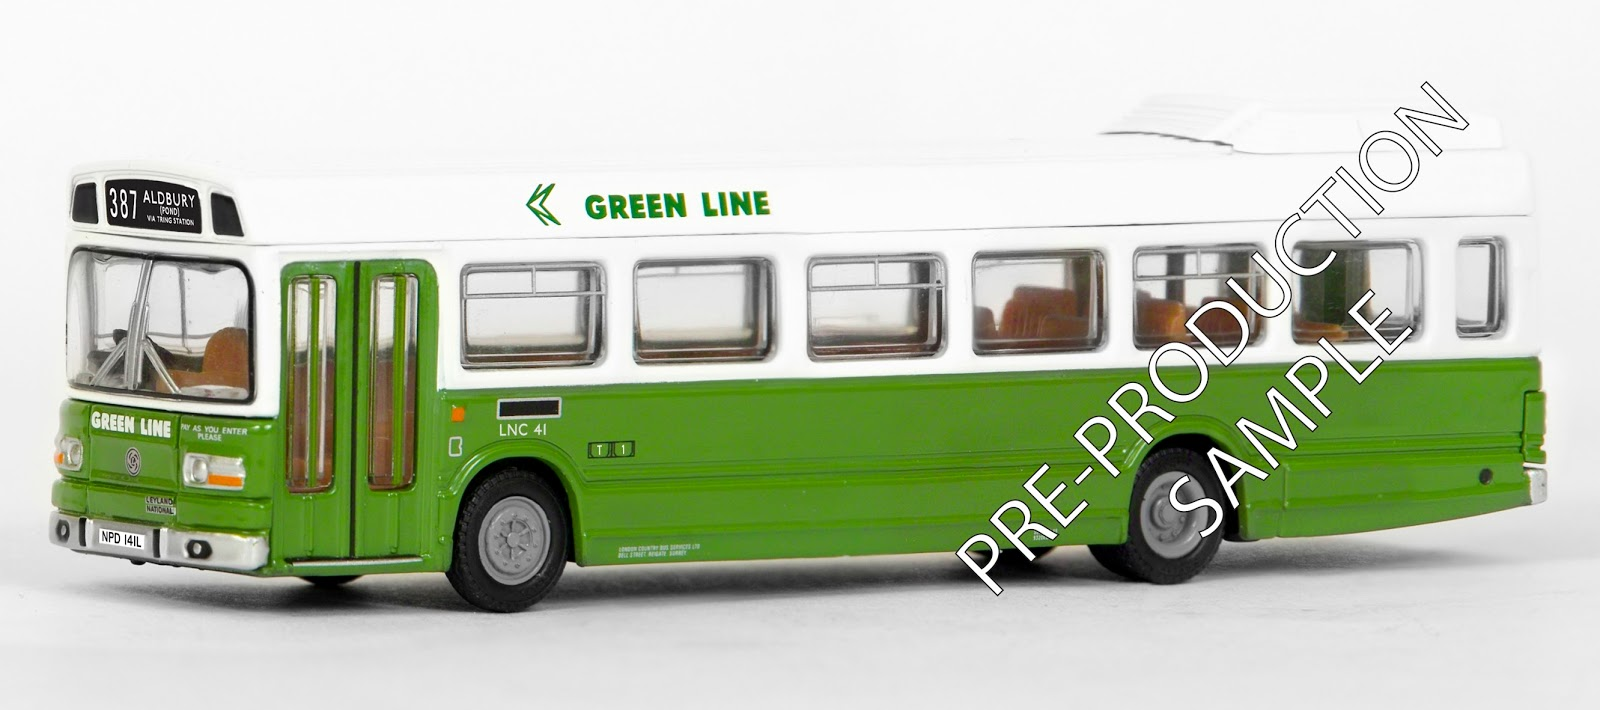 EFE PRE-PRO SAMPLE 17311 - Leyland National MkI Long 1 Door - Green Line N.B.C. Registration number NPD 141L, fleet number LNC 41. Works route 387 to Aldbury. Scheduled for a February release